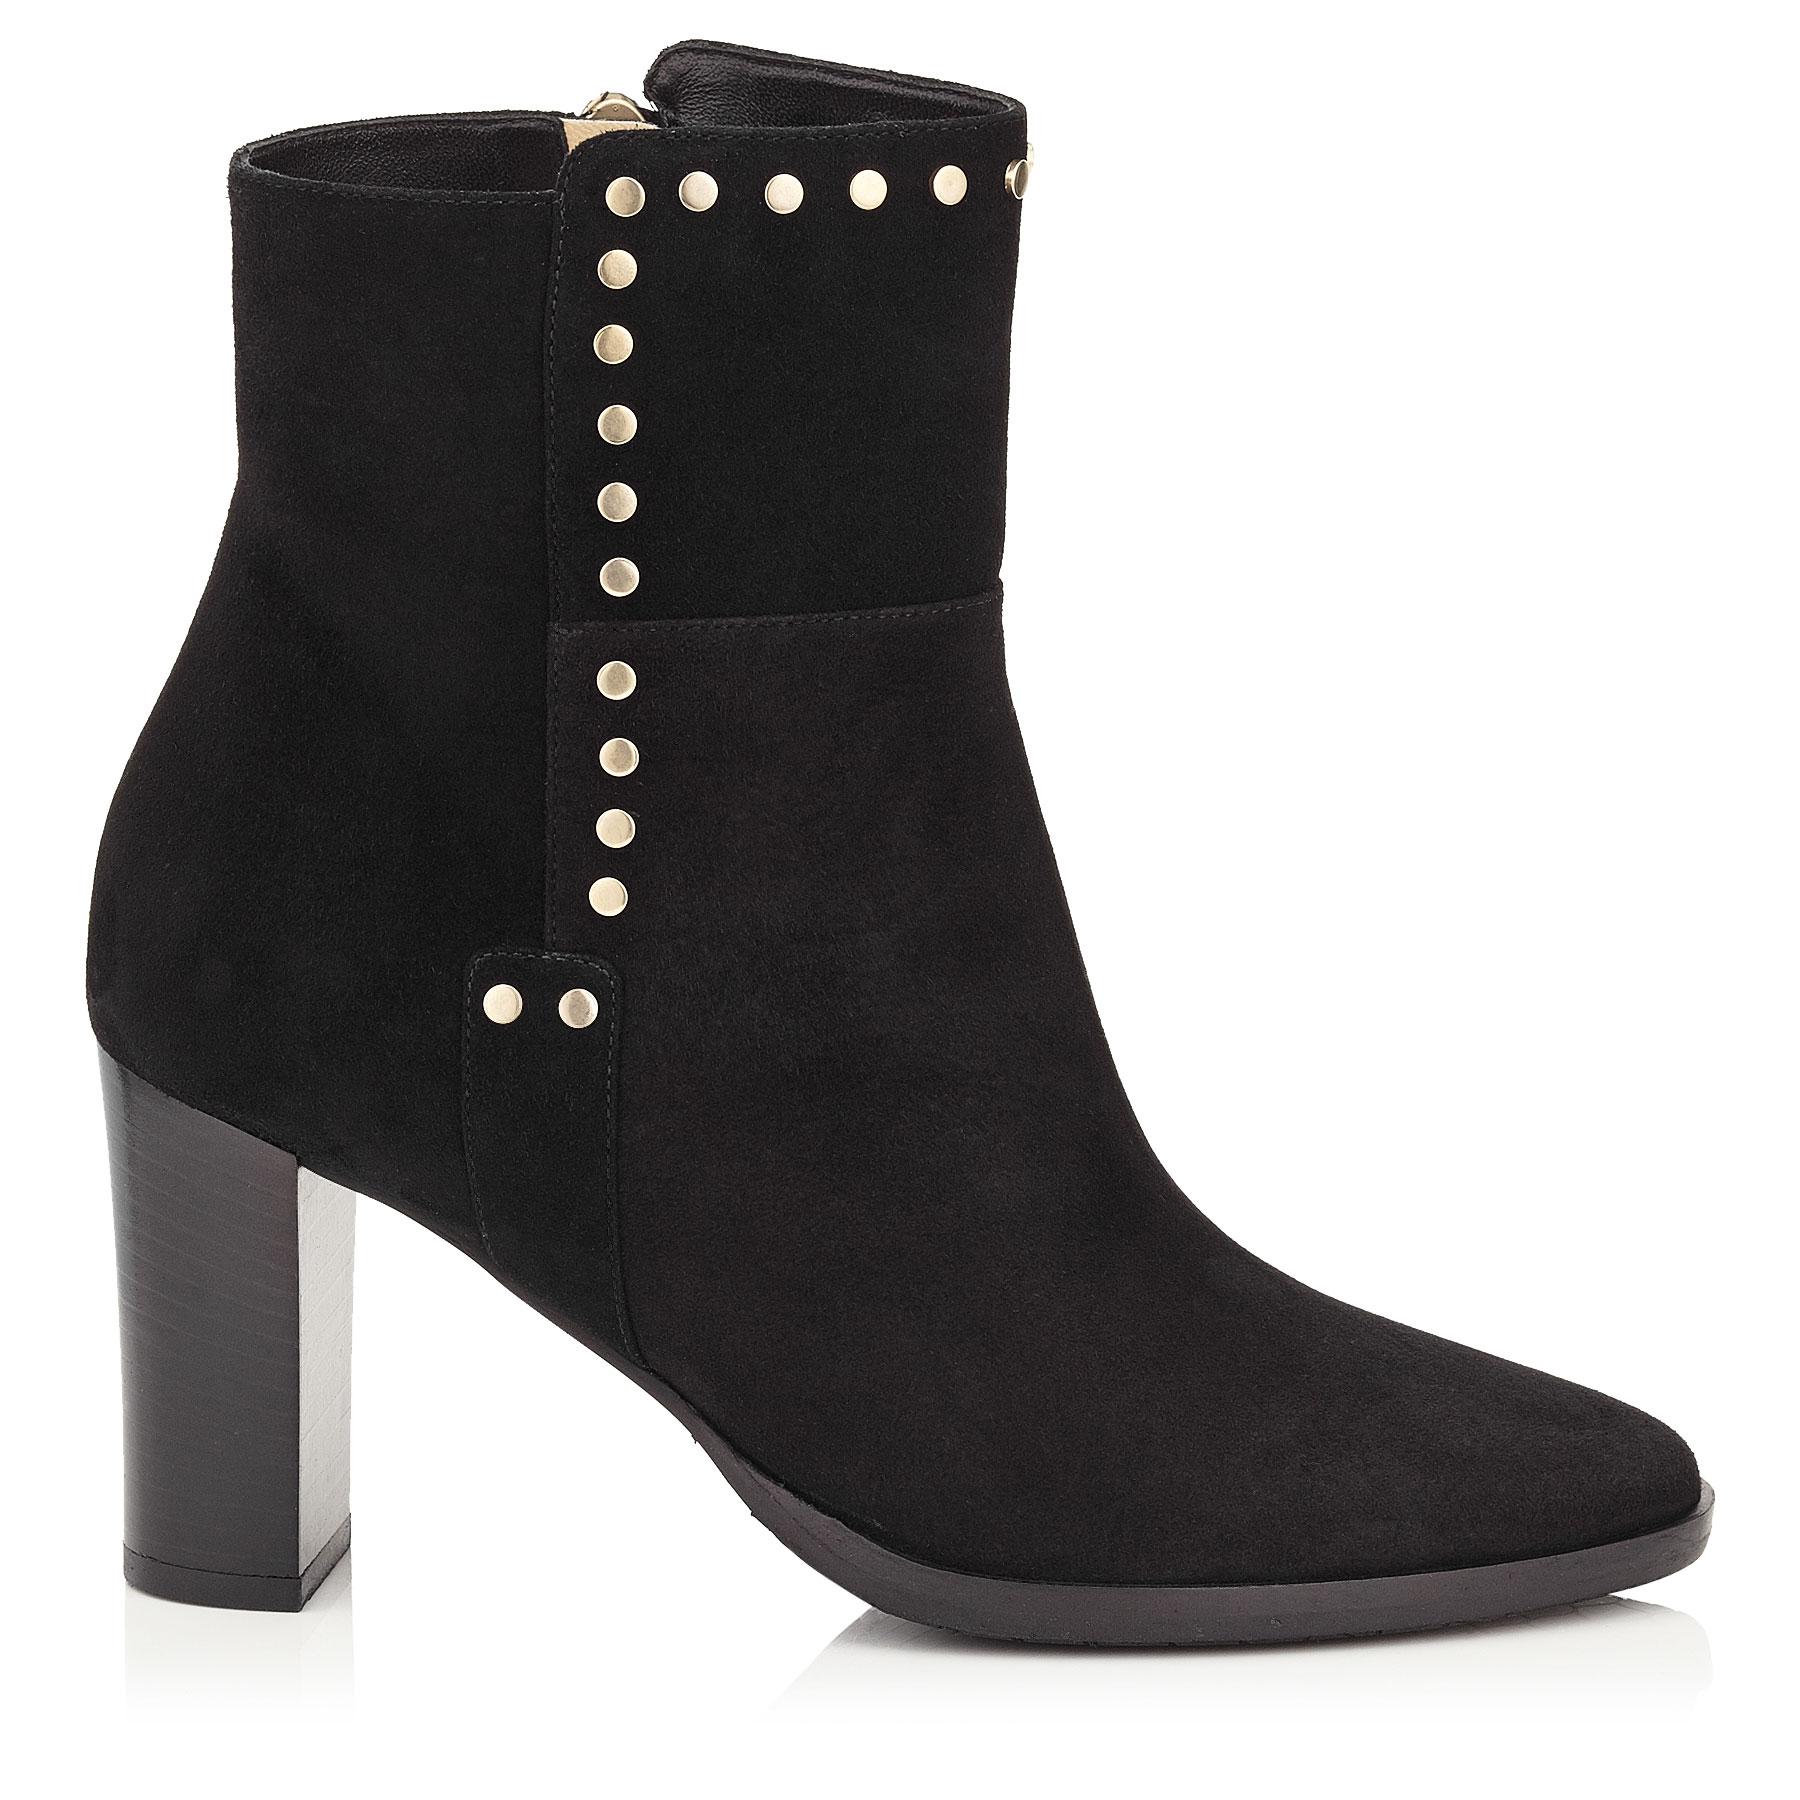 HARLOW 80 Black Suede Boots with Stud Trim